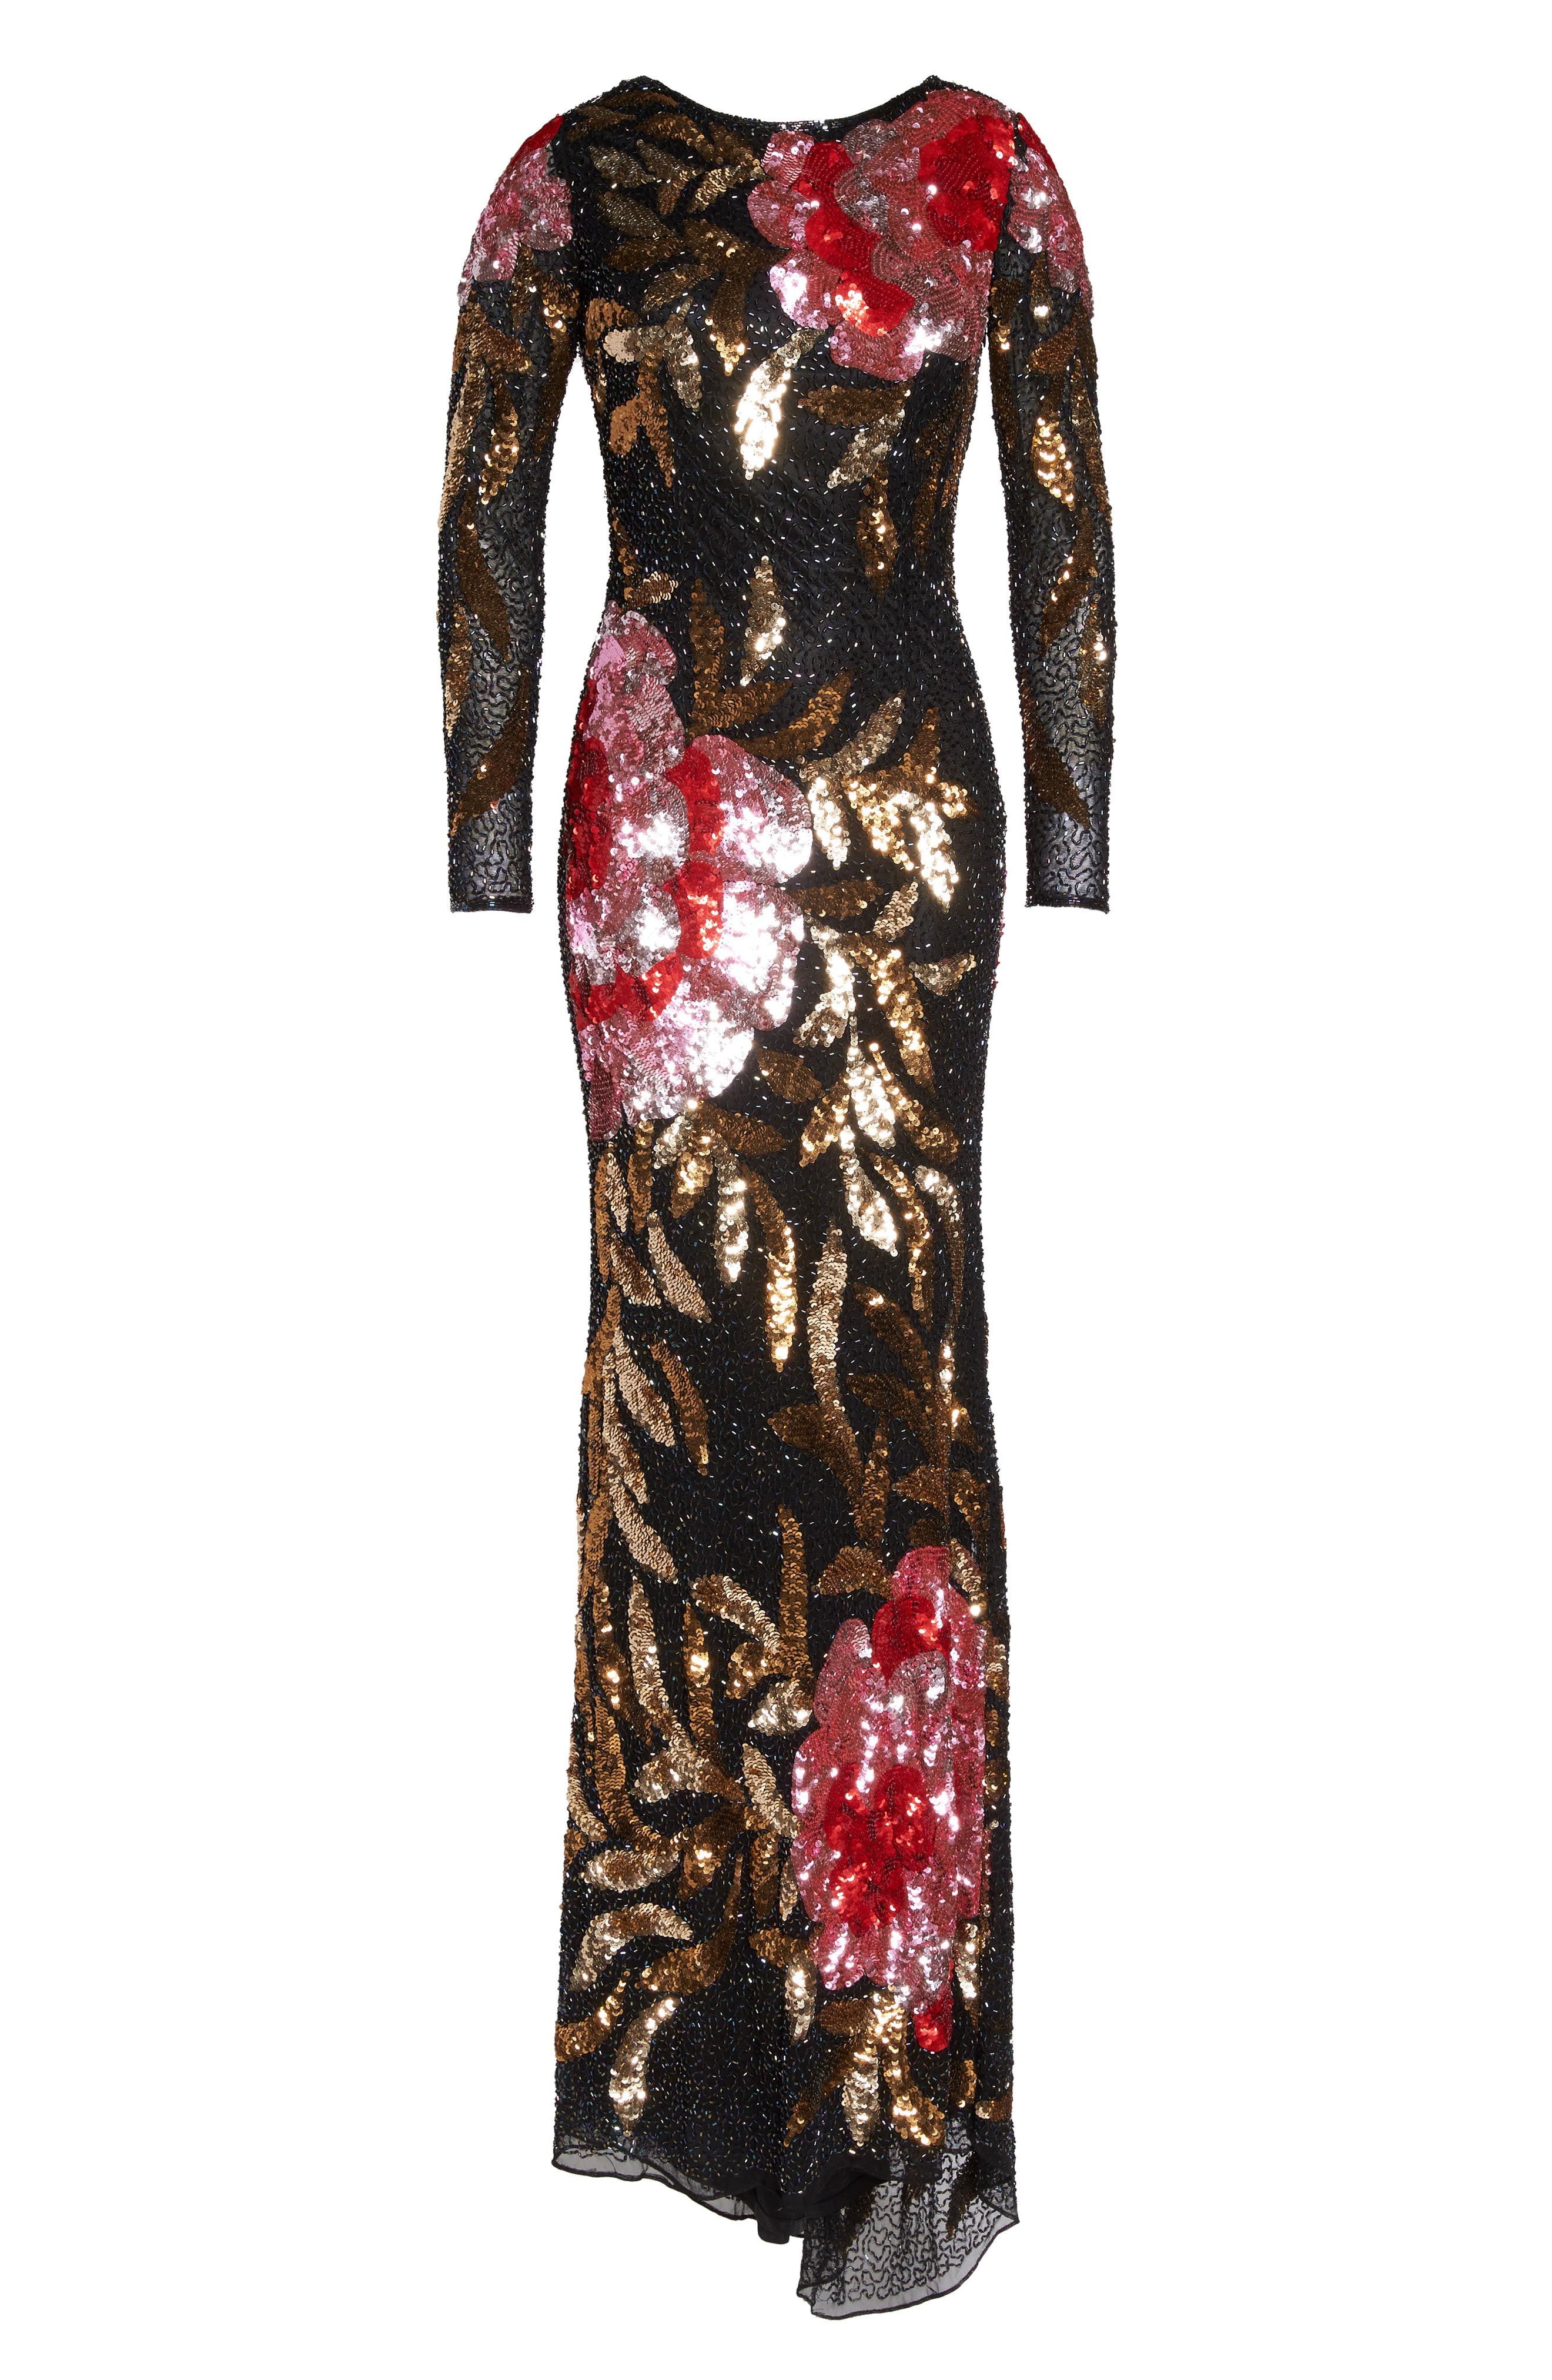 MAC DUGGAL, Drape Back Floral Sequin Gown, Alternate thumbnail 7, color, BLACK/ RED MULTI